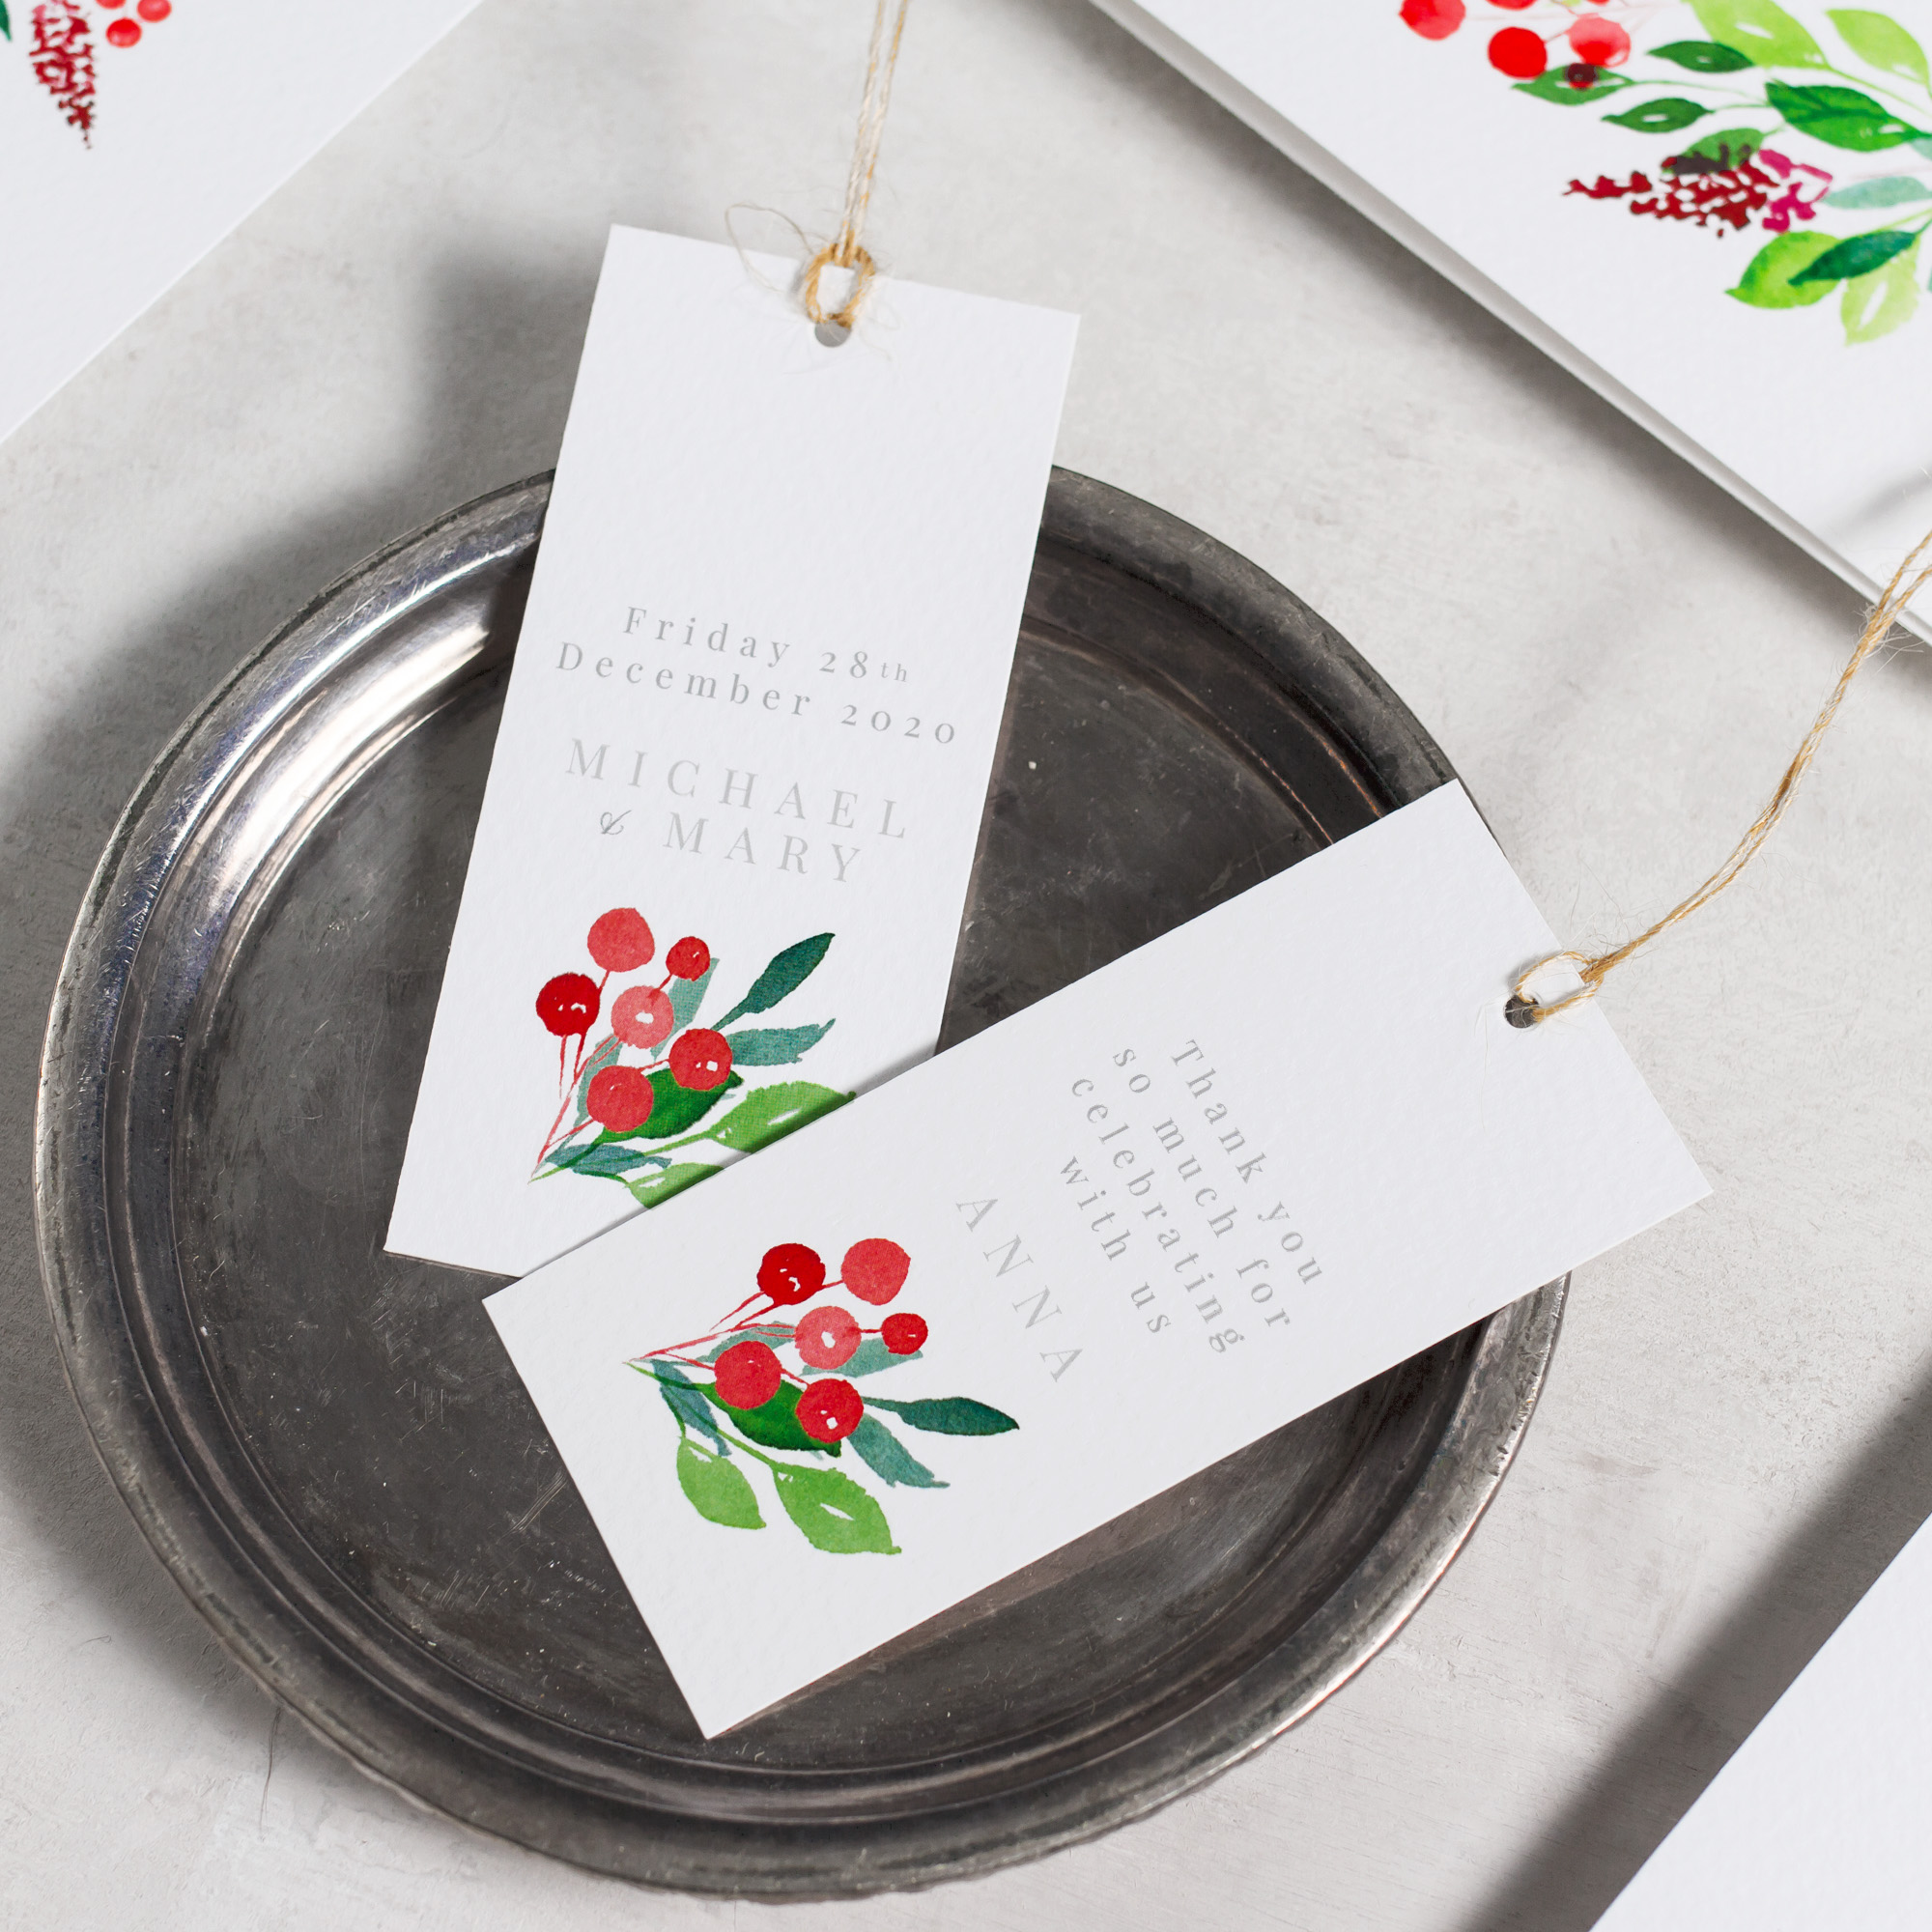 Winter-Wedding-Stationery-Luxury-Unique-Hand-Painted-Botanical-Leaves-Berries-Grenery-Hand-Painted-Wedding-Favour-Tag-Place-Cards-Evergreen-Pingle-Pie.jpg